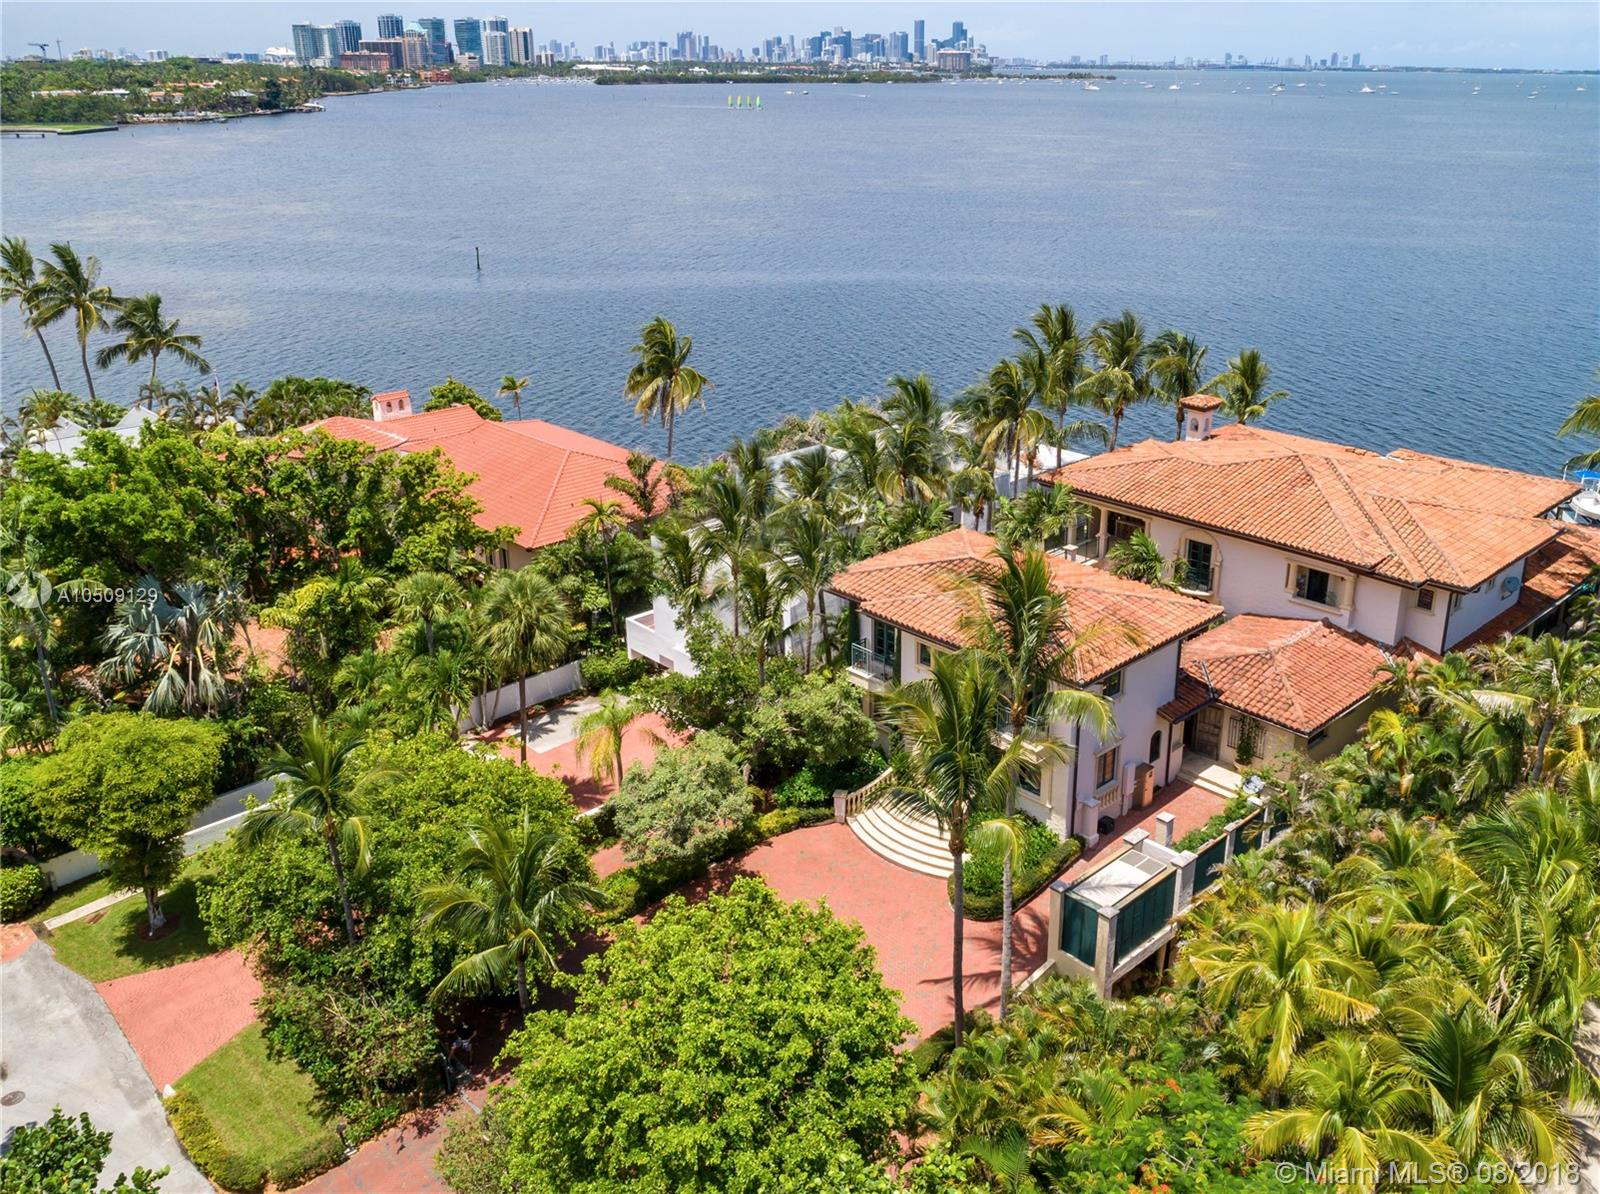 This Bayfront Tuscan Villa With A Modern Interior Flare Is Surrounded By Expansive Views Of Biscayne Bay And Miami+Ógé¼Gäós Skyline! The Elegant Courtyard Entrance Reveals Classic Architecture With An Open Layout Filled With Natural Bright Light. This Spectacular Home Is Made For Entertainment With A Large Chef+Ógé¼Gäós Kitchen, Bar Area And An Impressive 2, 000 Bottle Temperature-Controlled Wine Cellar. Custom-Built Home, 17Ft Above Sea Level With 100Ft Of Water Frontage. Oversized Master With Dual Closets, Wet Bar & Luxurious Bath. Meticulously Finished With Honed Marble & Porcelain Floors, Led Lighting & Surround Sound System Throughout. Elevator, Impact Glass, Full House Generator & 2 Guest Cottages. Minutes Away From Elite Schools, Coconut Grove, Brickell, Downtown & Miami Beach. Sf As Per Floorplan